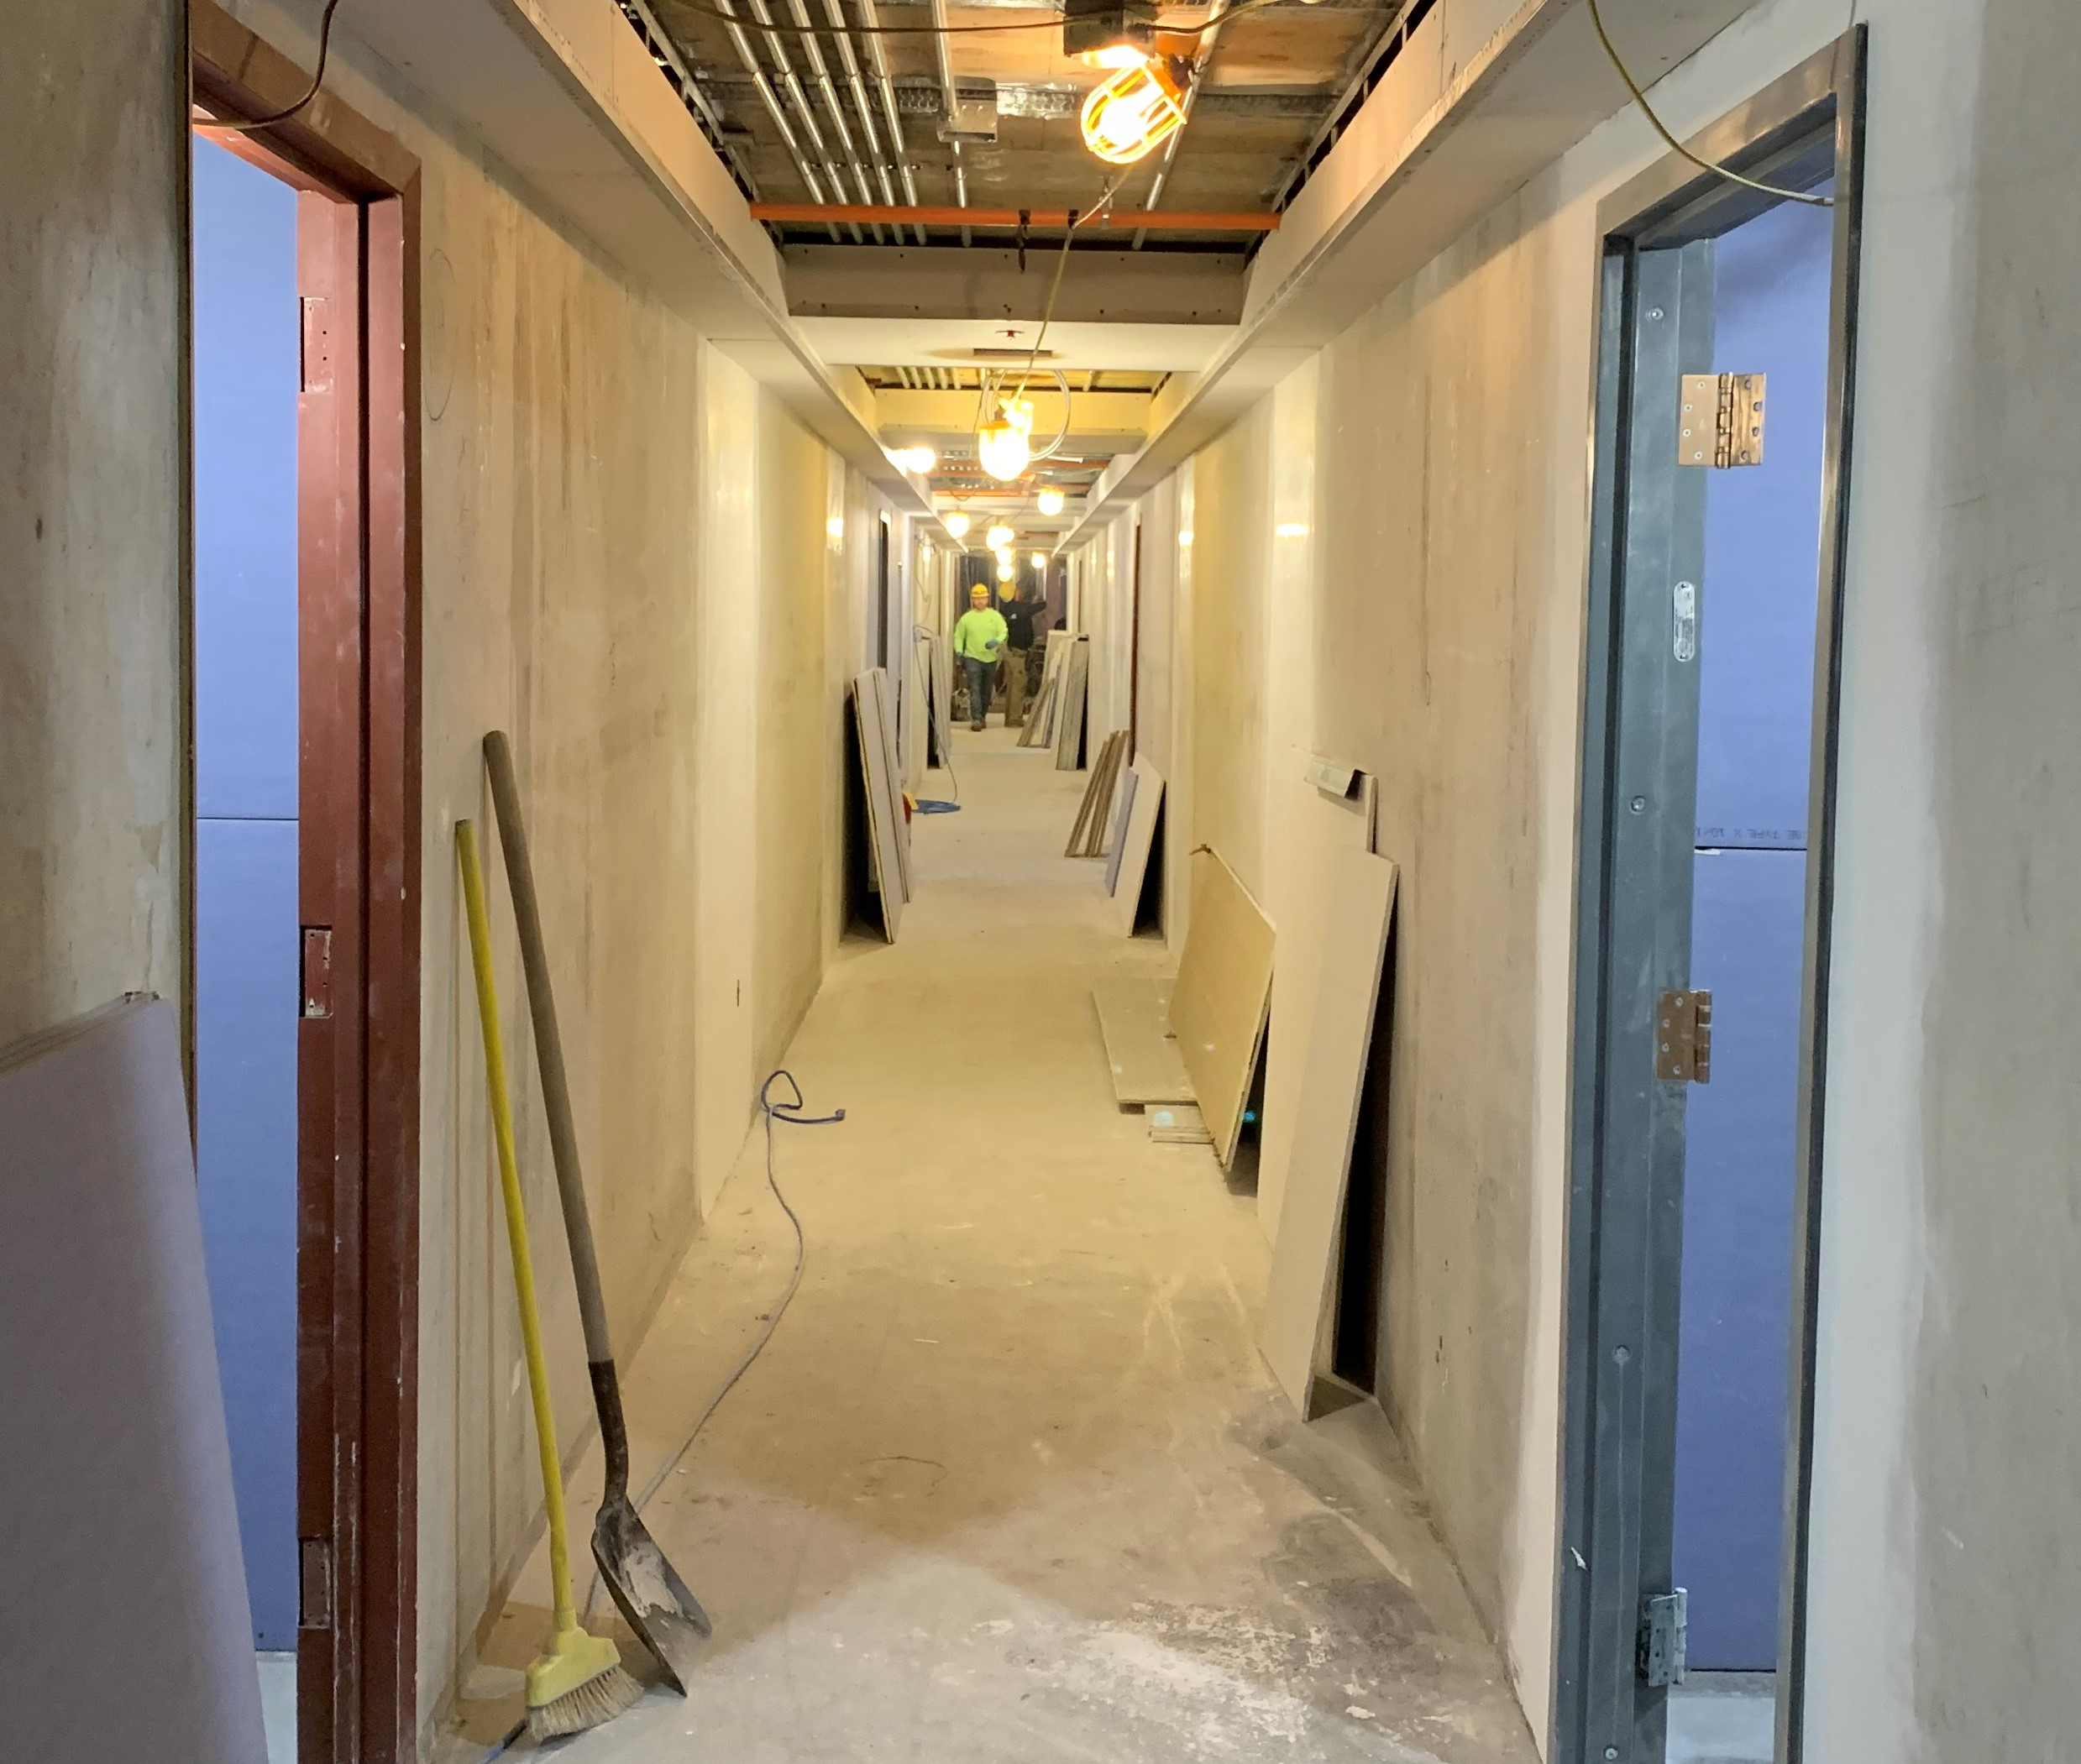 Kent Hall Hallway Interior Under Renovation